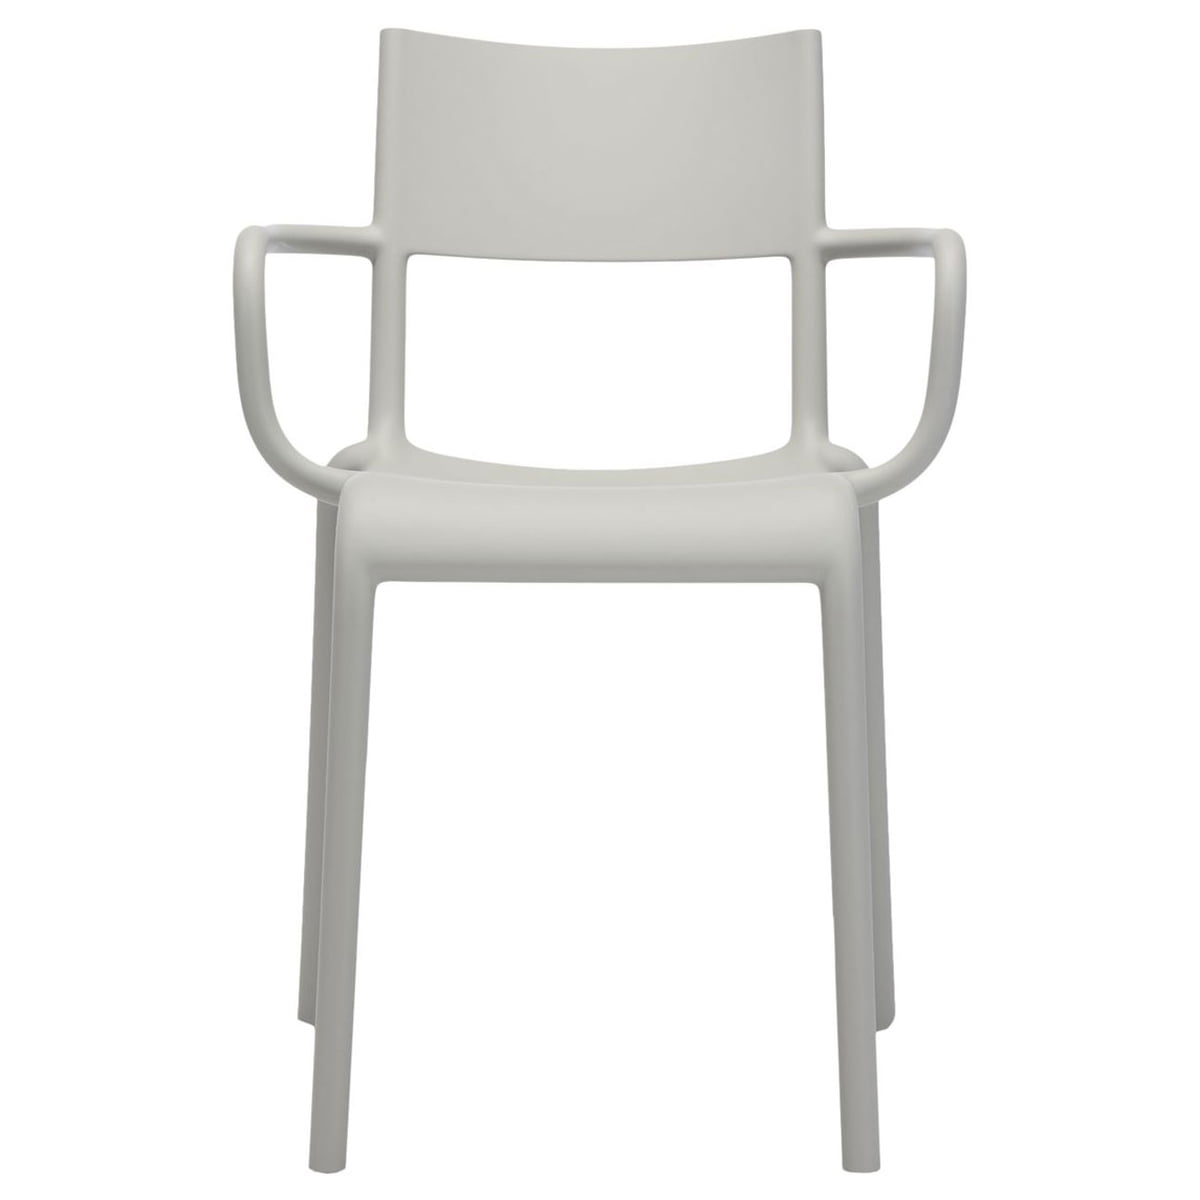 Kartell Garden Furniture Generic a chair by kartell connox kartell generic a chair grey workwithnaturefo